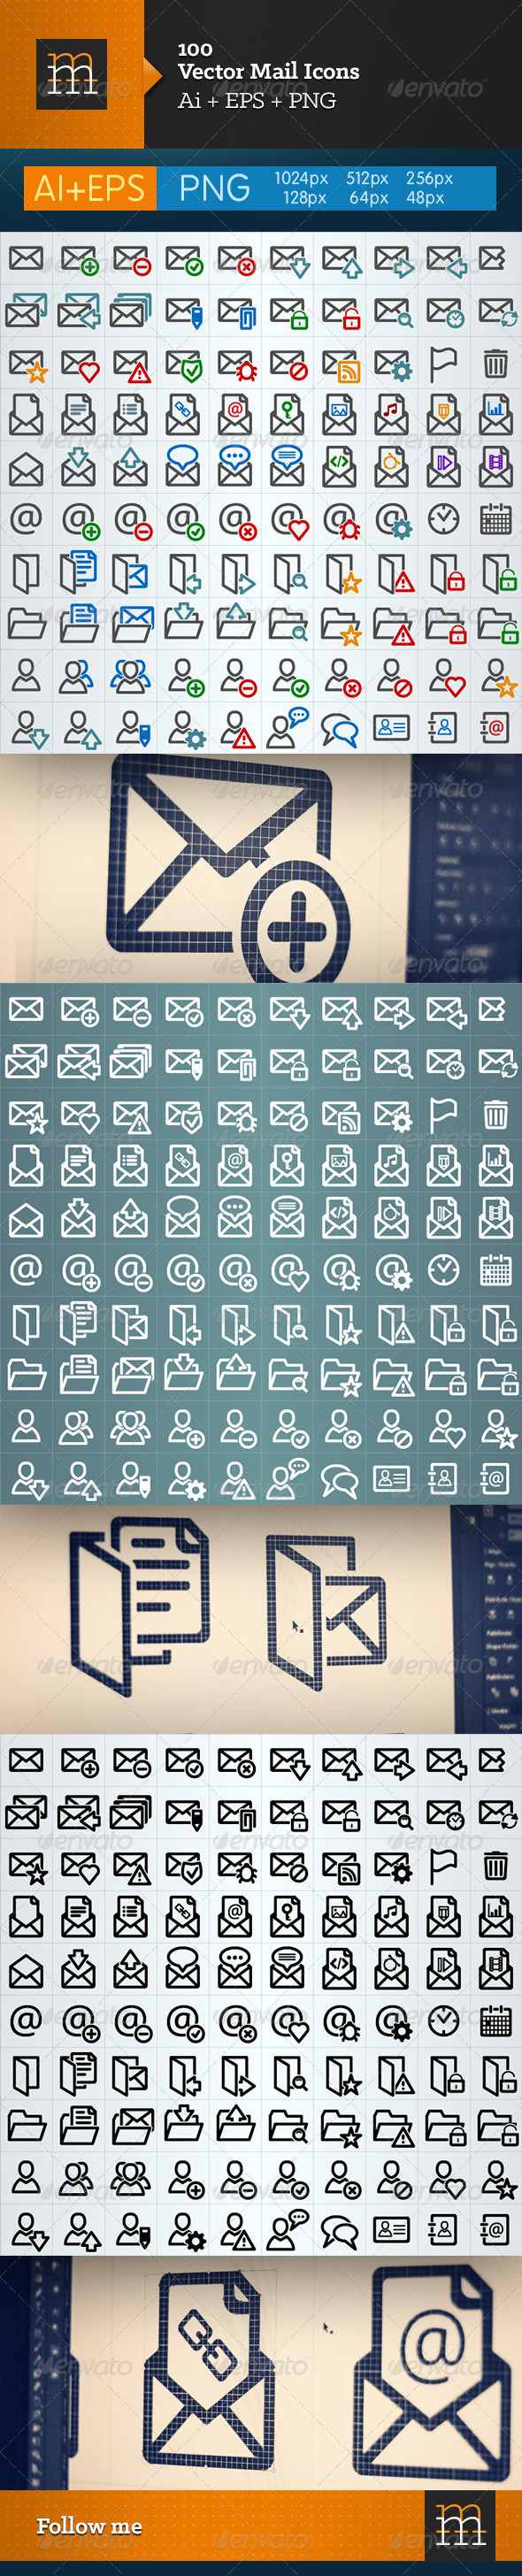 100 Vector Mail Icons  - Media Icons